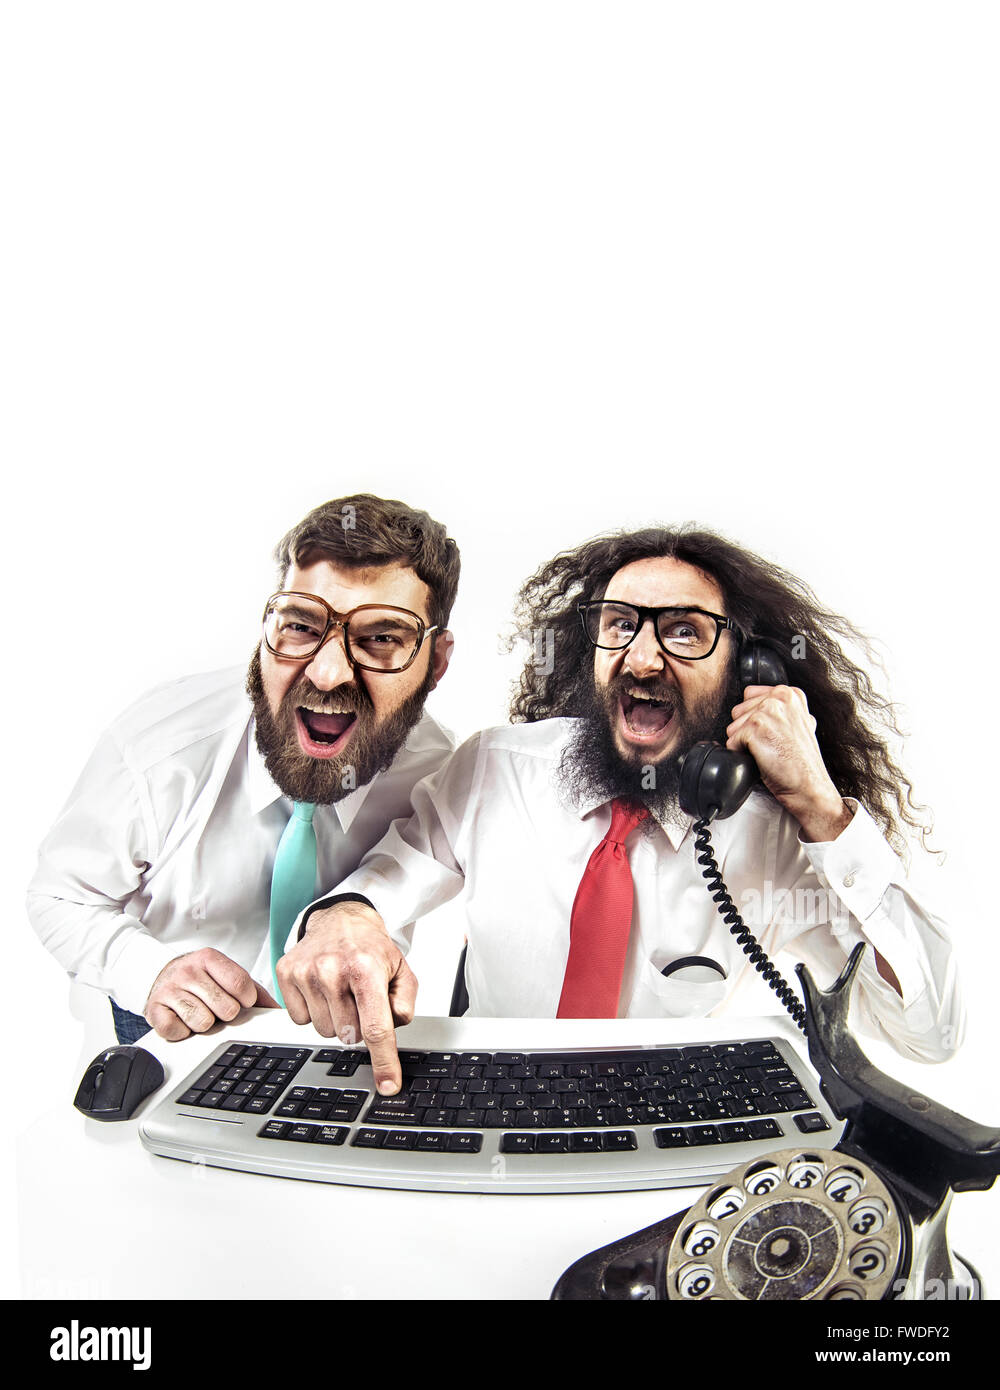 Two nerdy pals in the office - Stock Image